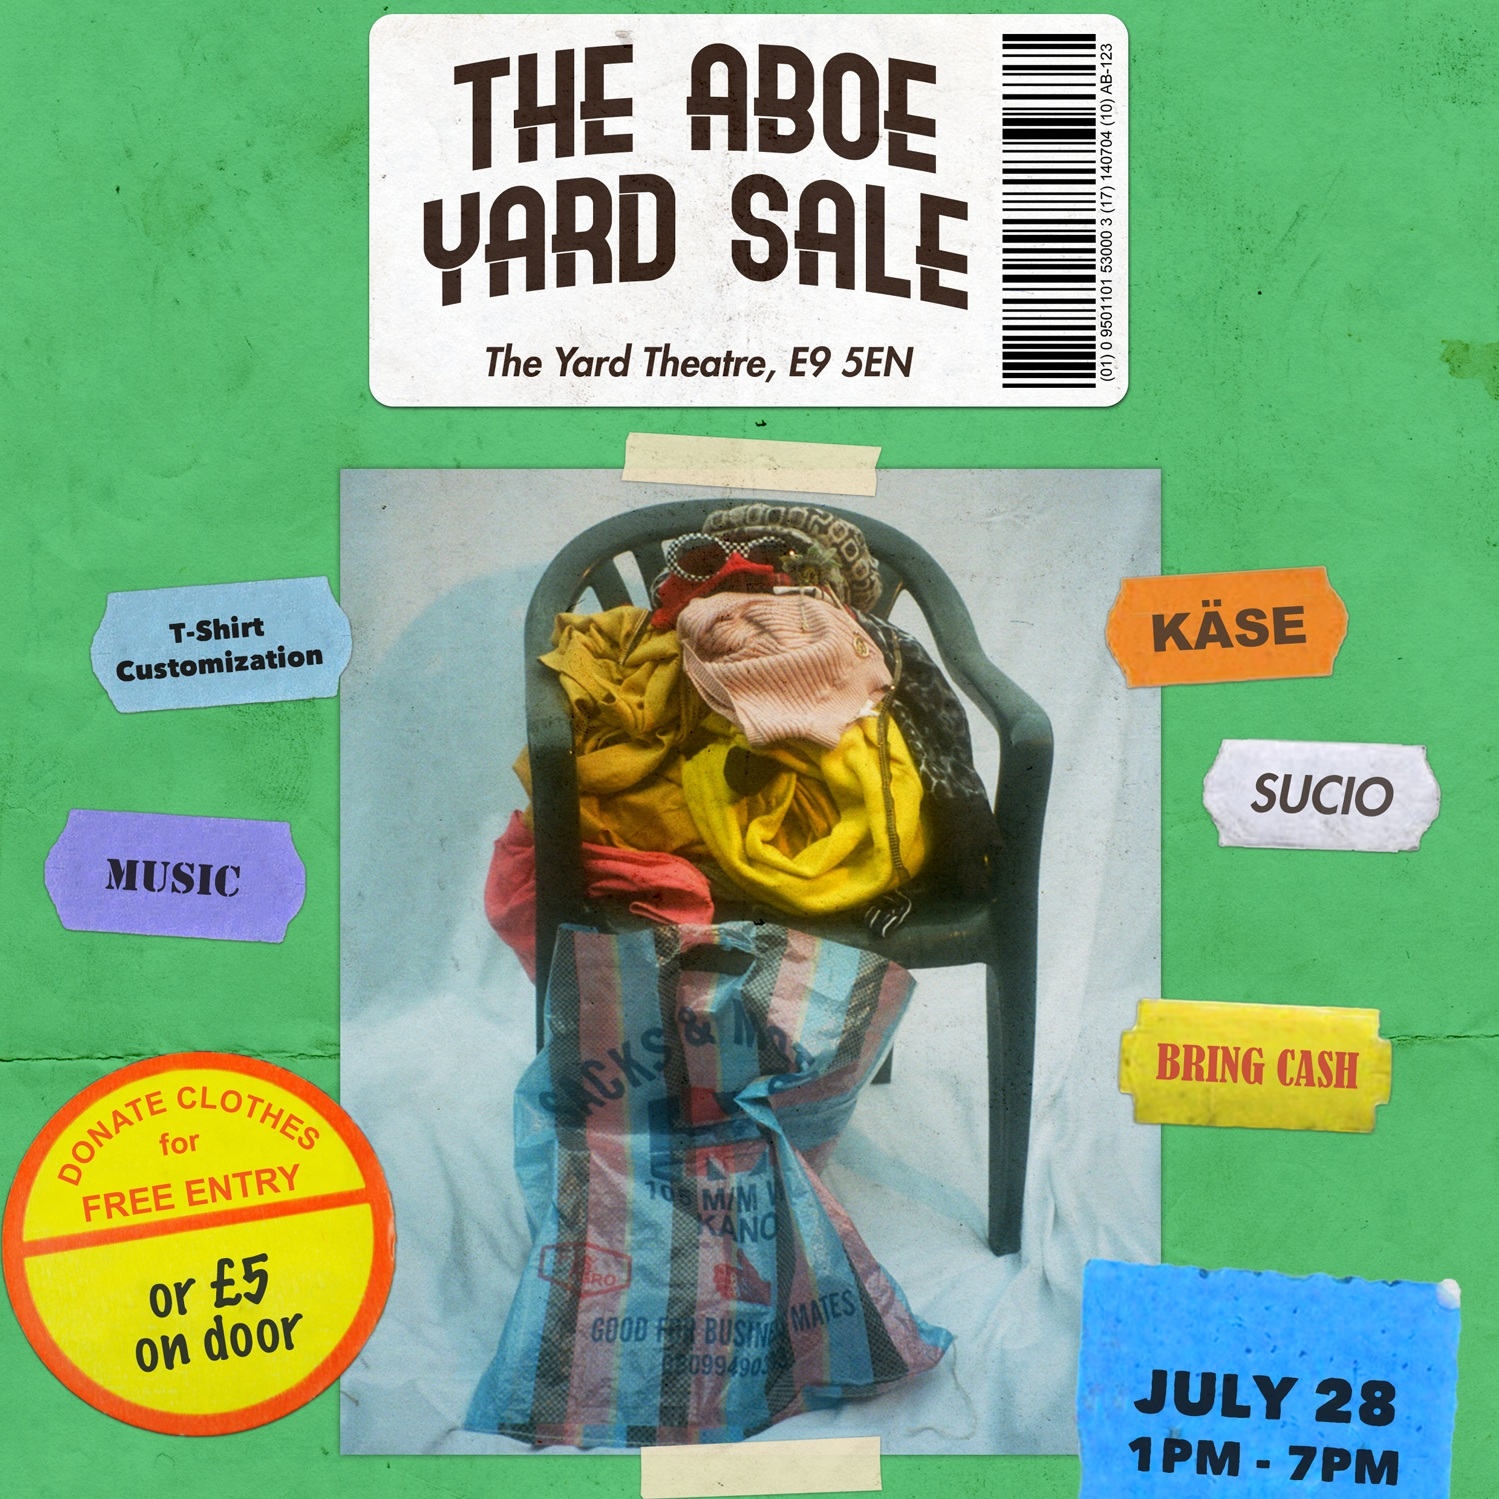 - The ABOE Yard Sale was a day event for selling, customising and donating clothes. We had a pick of very exclusive ABOE merch, samples and 1-off pieces alongside upcoming brands KÄSE & Sucio. Entry was free for everyone who donated clothes and we collected it all and shipped it off to a number of different charities.